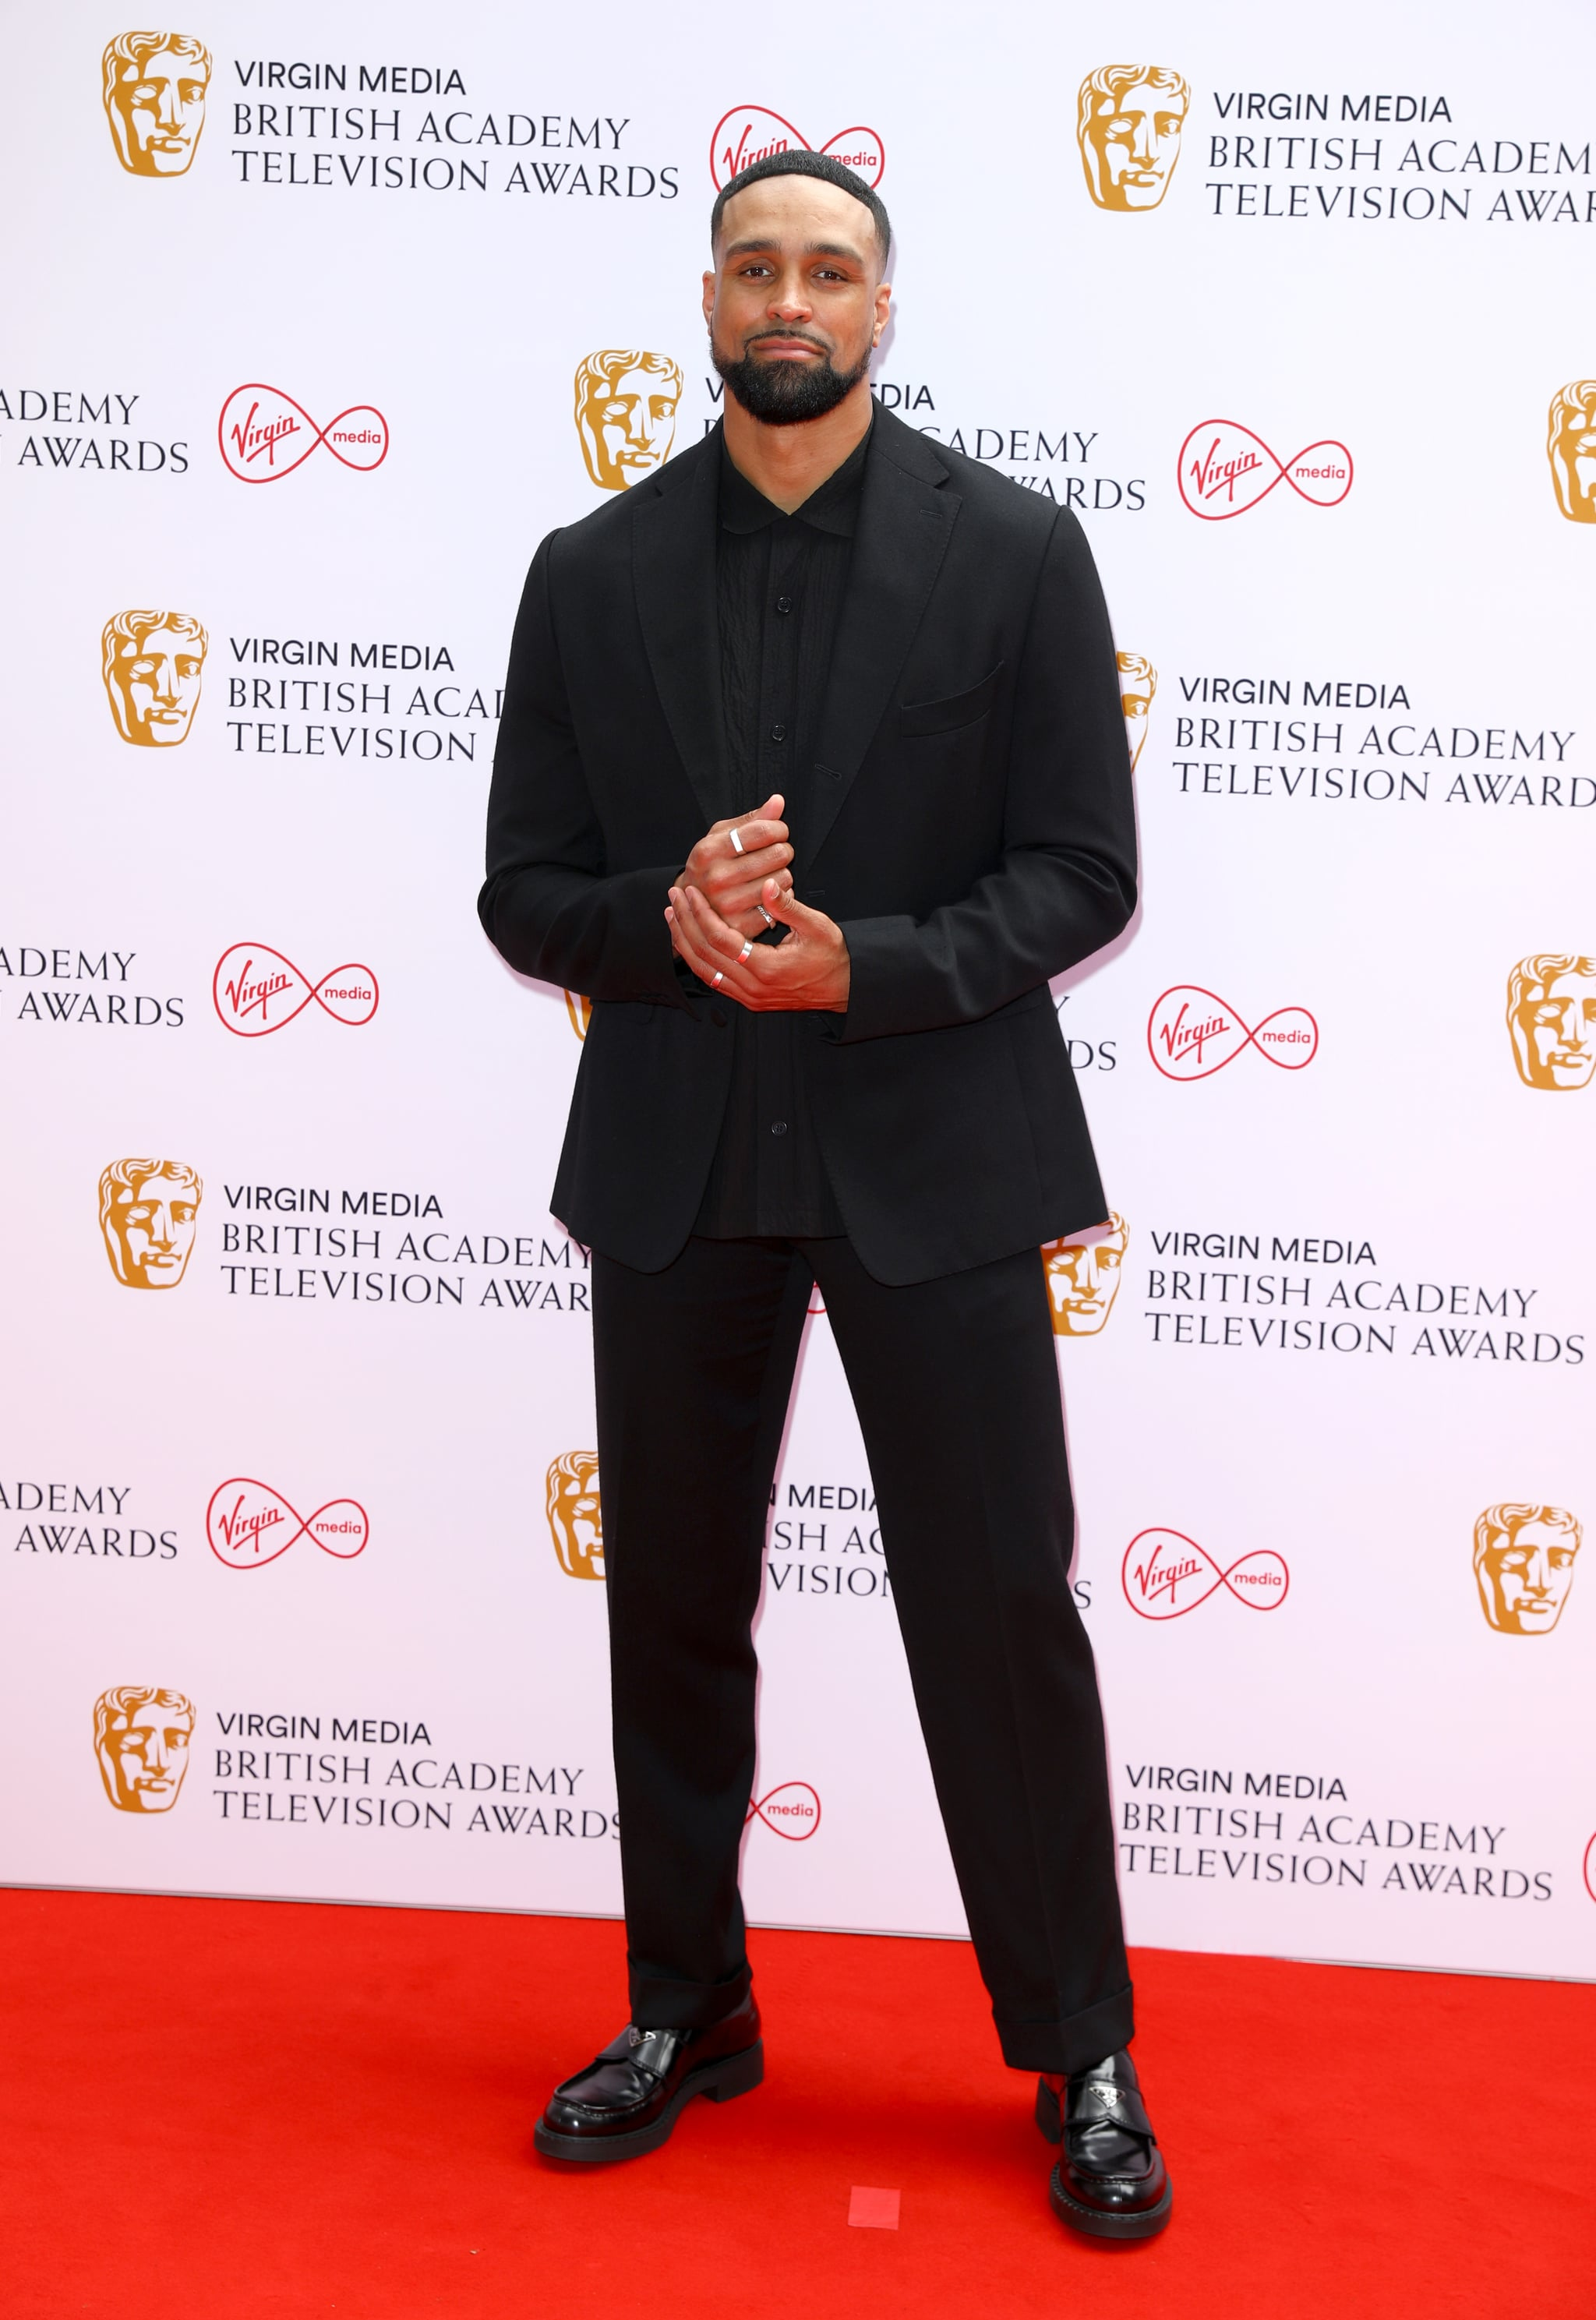 LONDON, ENGLAND - JUNE 06: Ashley Banjo attends the Virgin Media British Academy Television Awards 2021 at Television Centre on June 06, 2021 in London, England. (Photo by Tim P. Whitby/Getty Images)